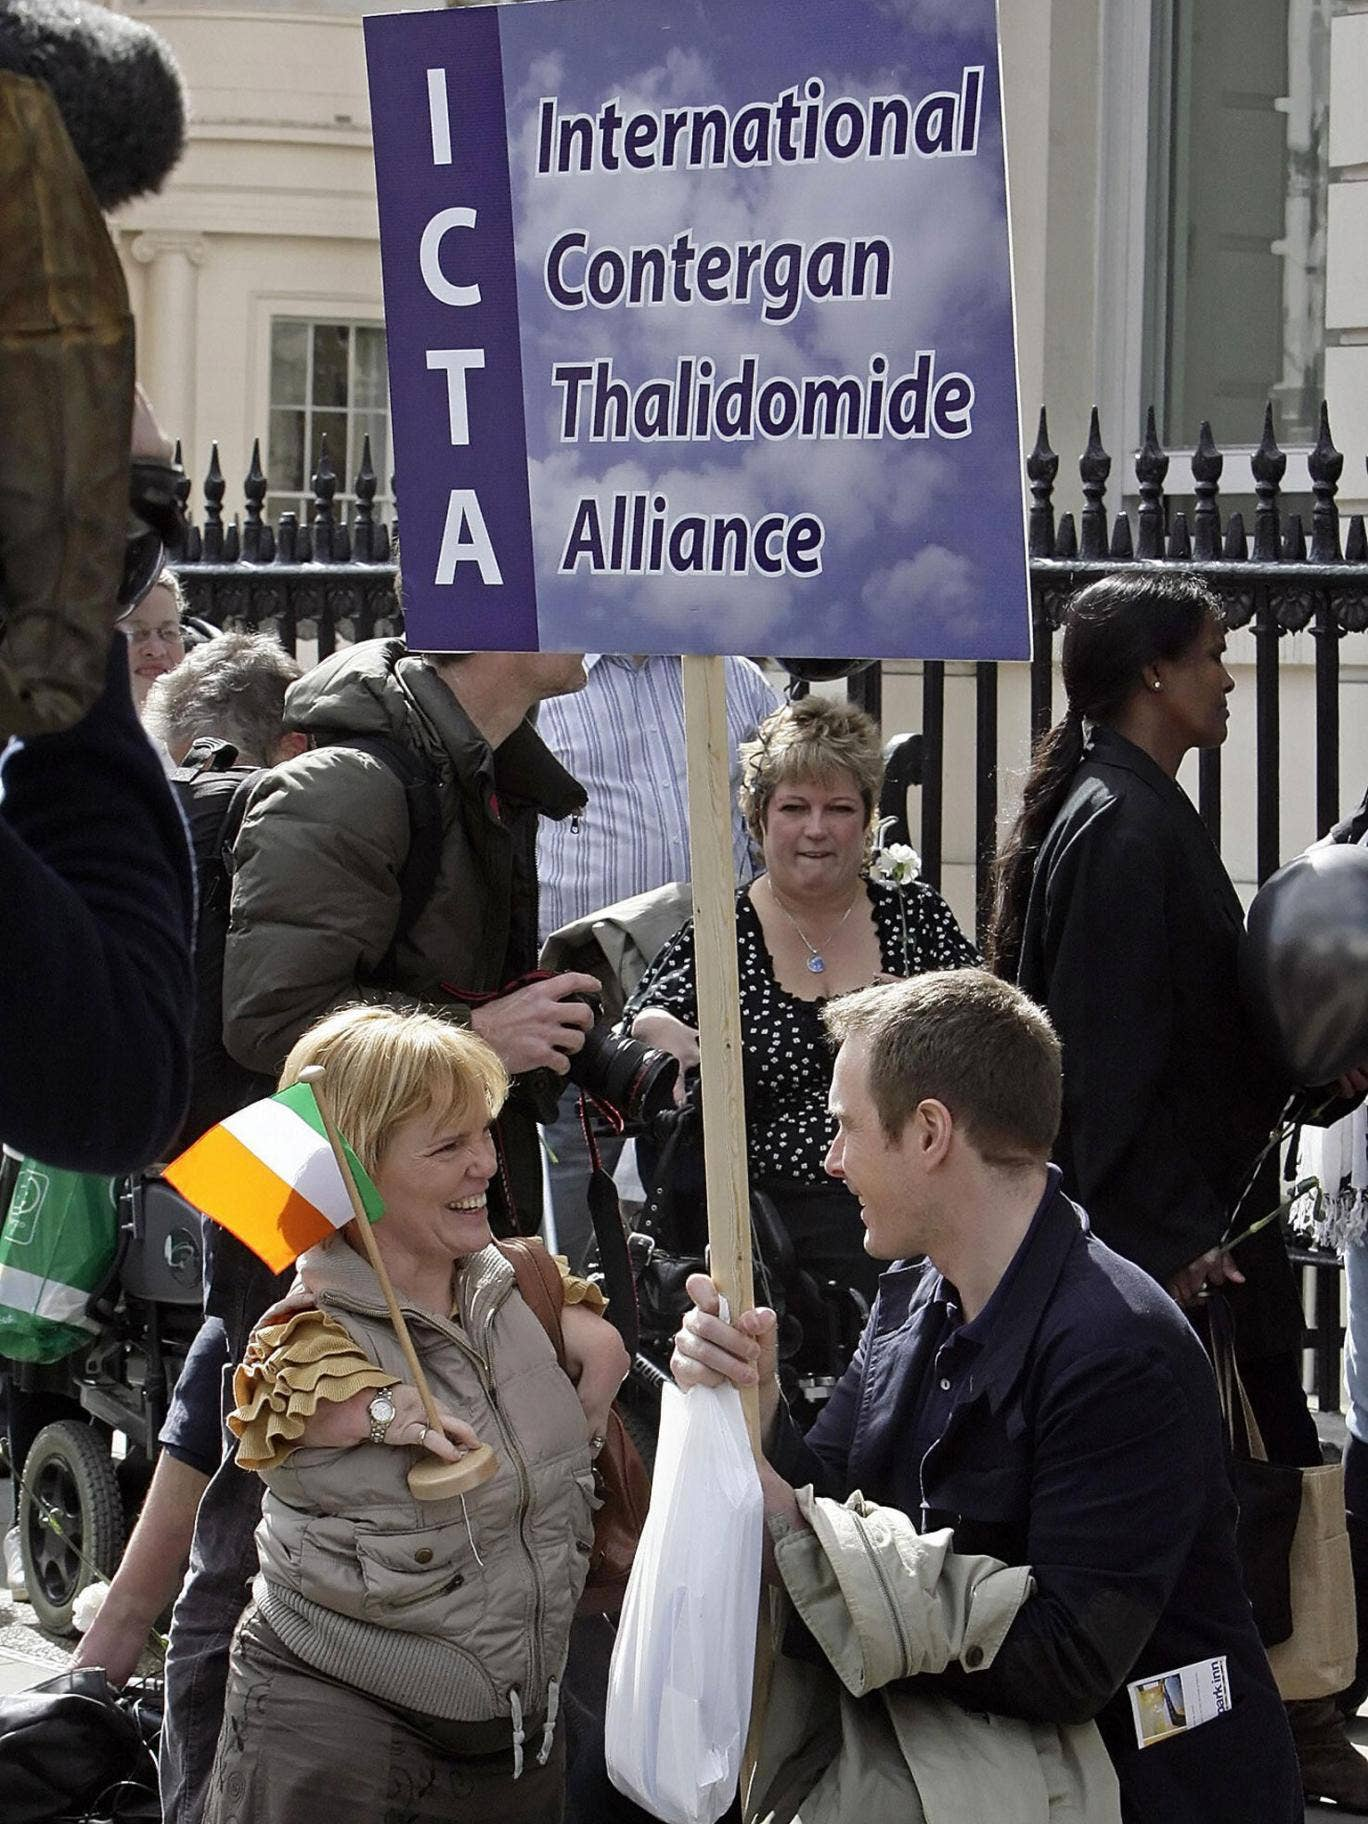 The International Contergan Thalidomide Alliance attends a protest outside the German embassy in London in 2008